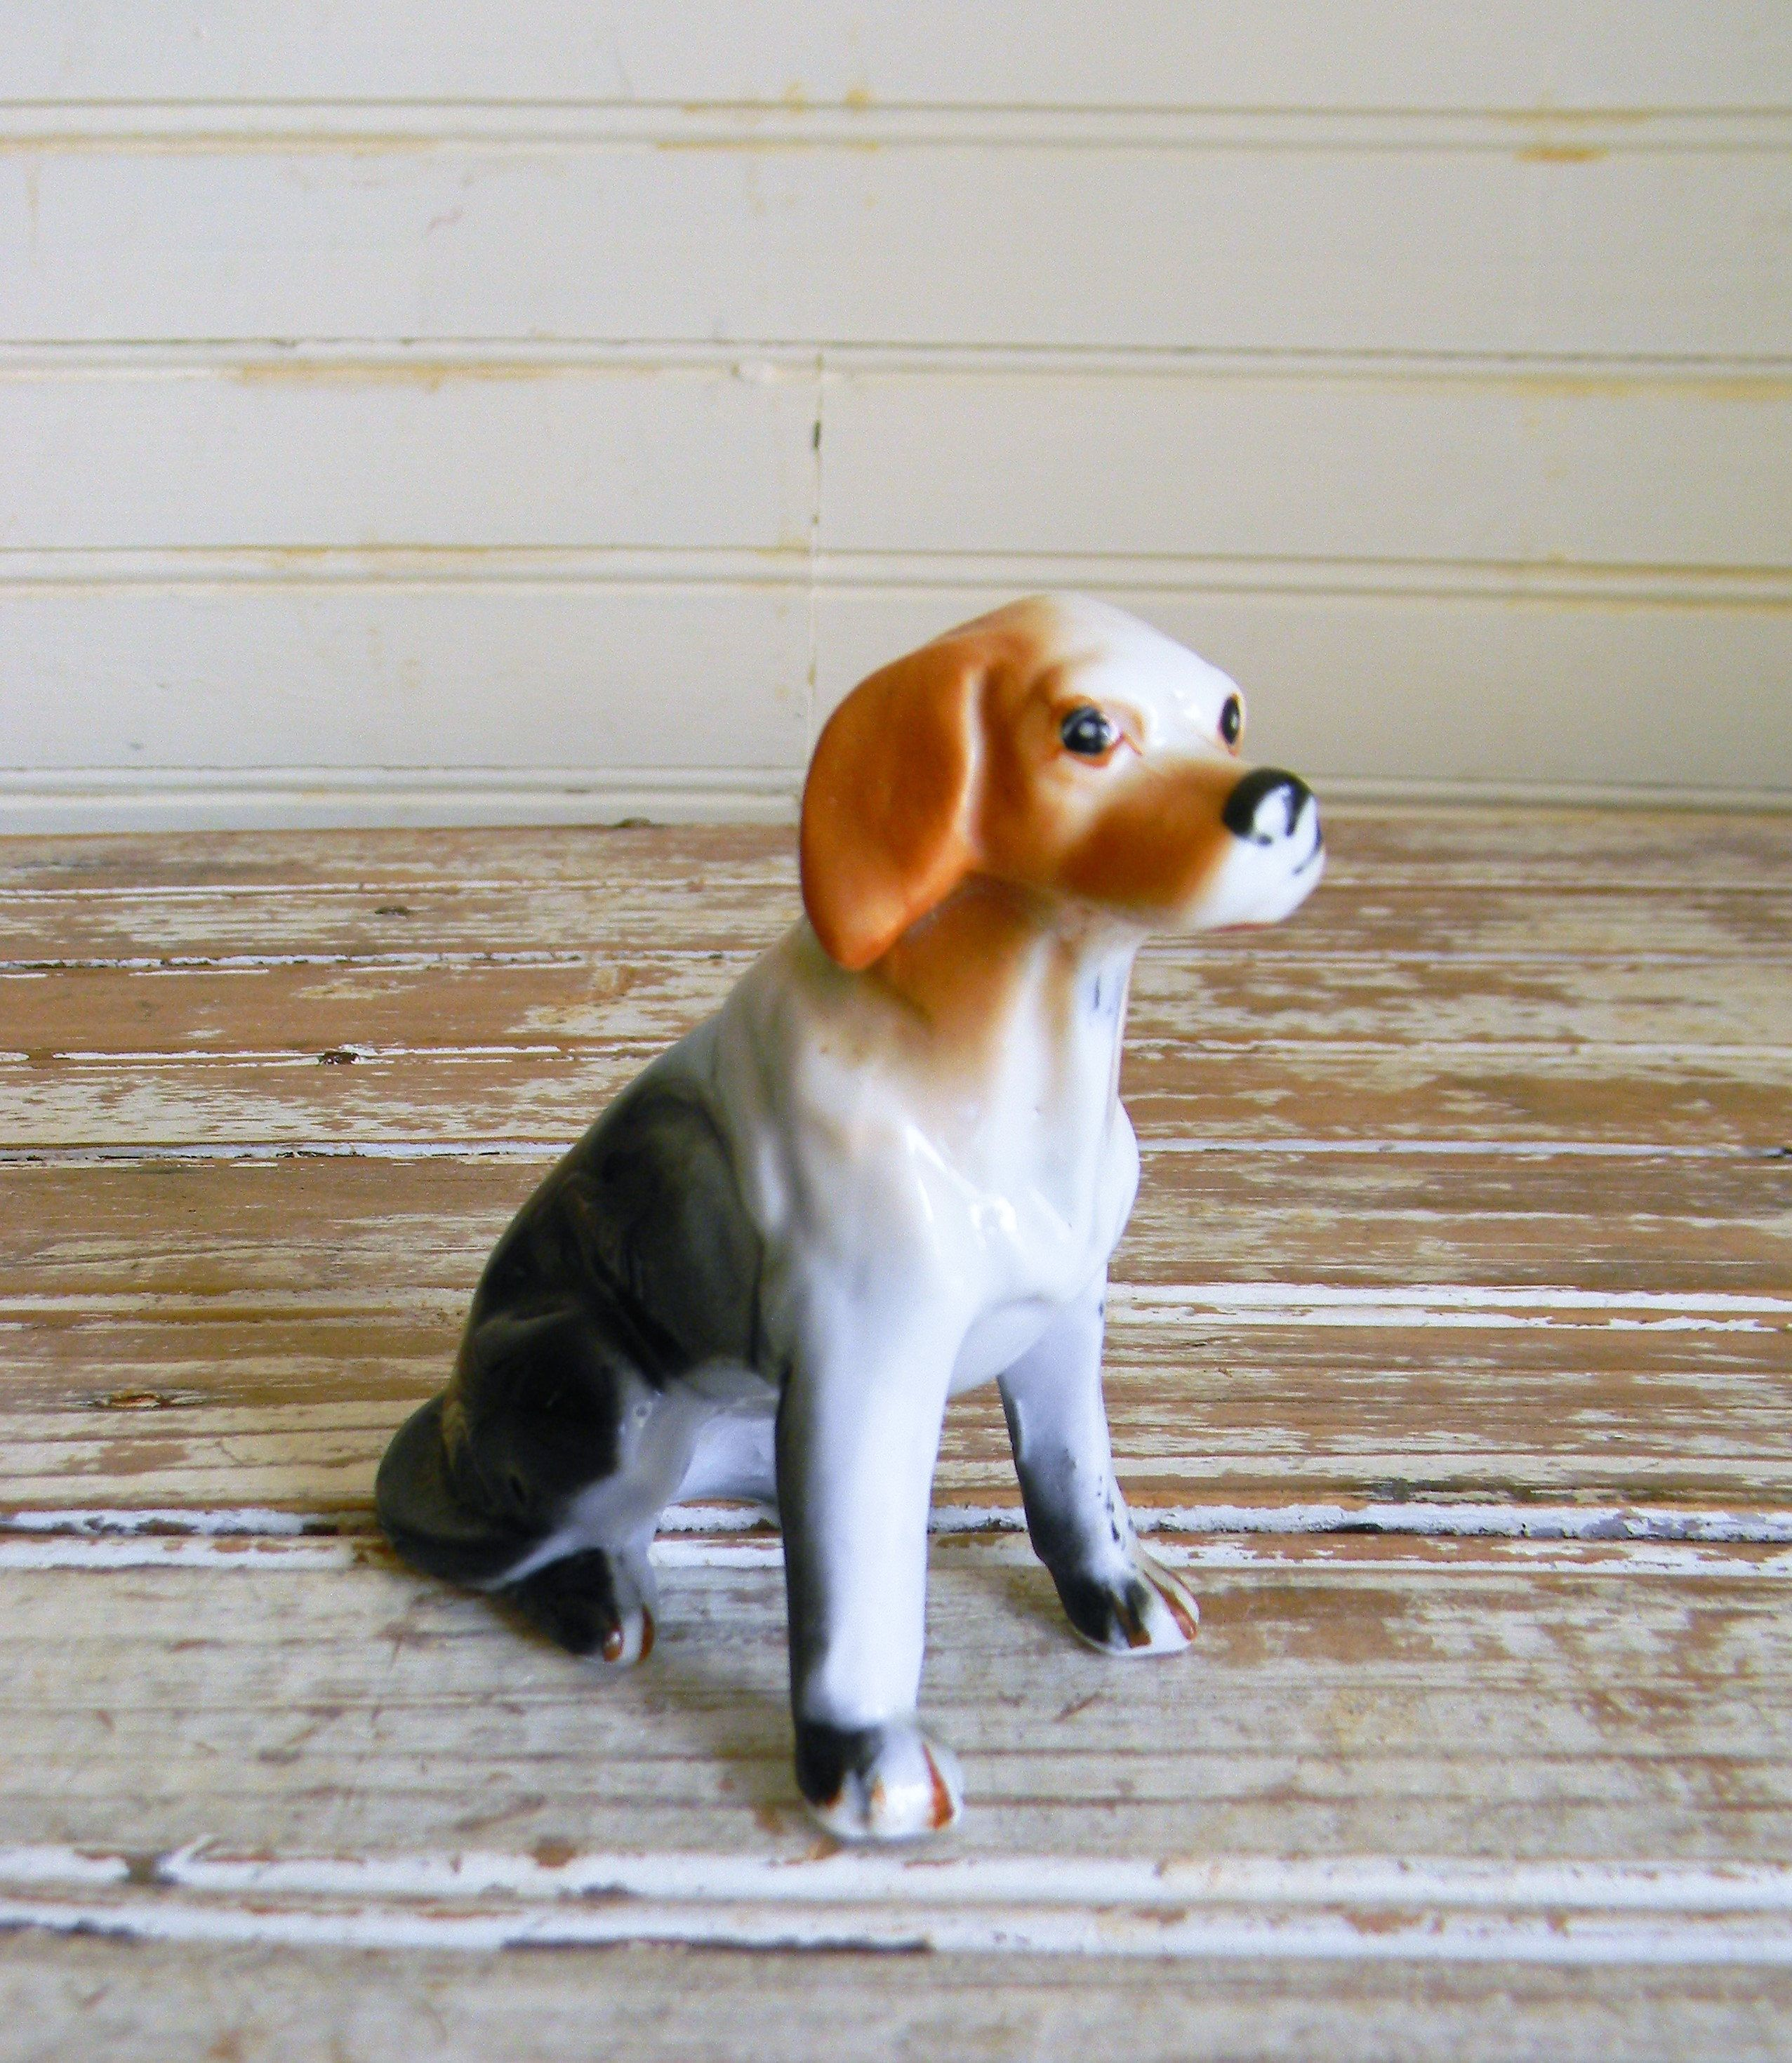 Beagle Dog Beagle Dog For Sale Beagles For Sale Online Beagle Female For Sale Puppies For Sale Uk Pocket Beagle For Sale Beagl Beagle Dog Beagle Dogs